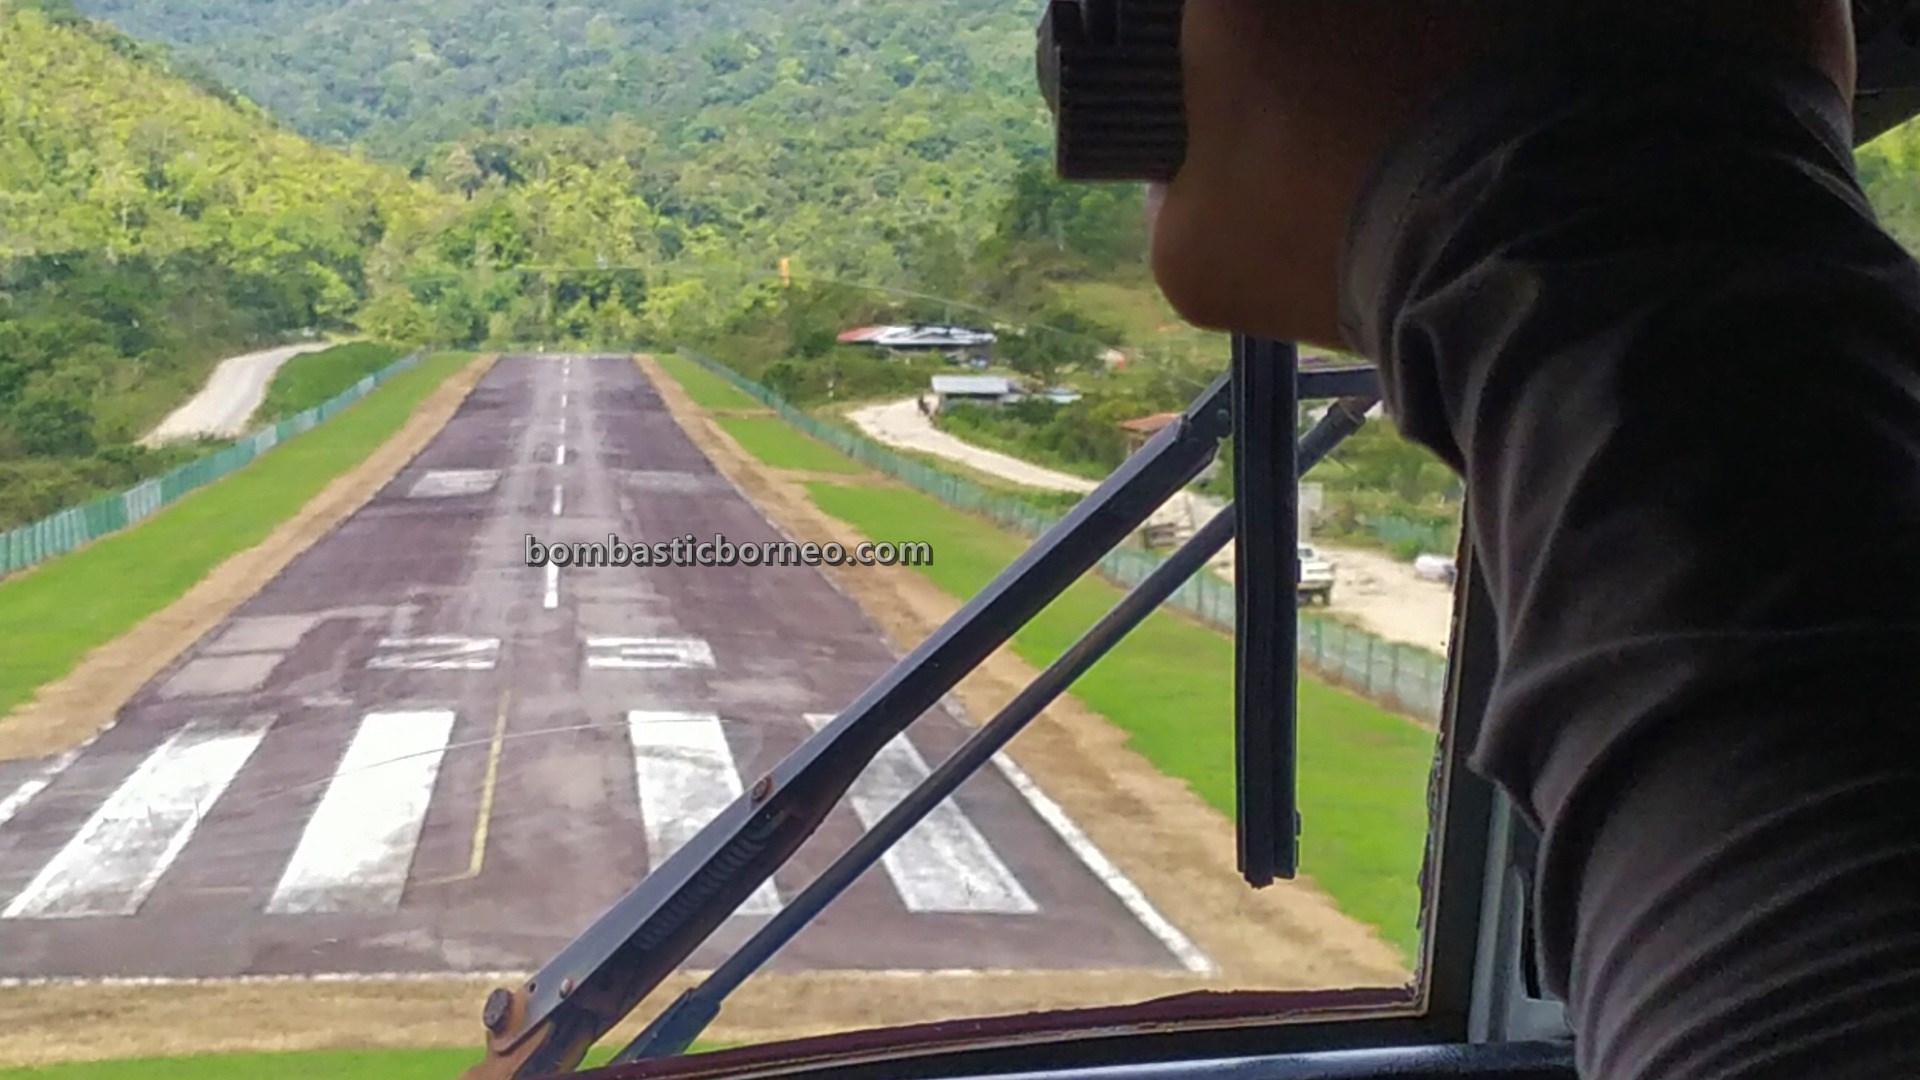 Mas Wings, twin otter, Ba'kelalan airport, Lapangan terbang, backpackers, destination, exploration, Interior, village, Maligan Highlands, Malaysia, Tourism, 婆罗洲内陆高原, 砂拉越巴卡拉兰, 马来西亚旅游景点